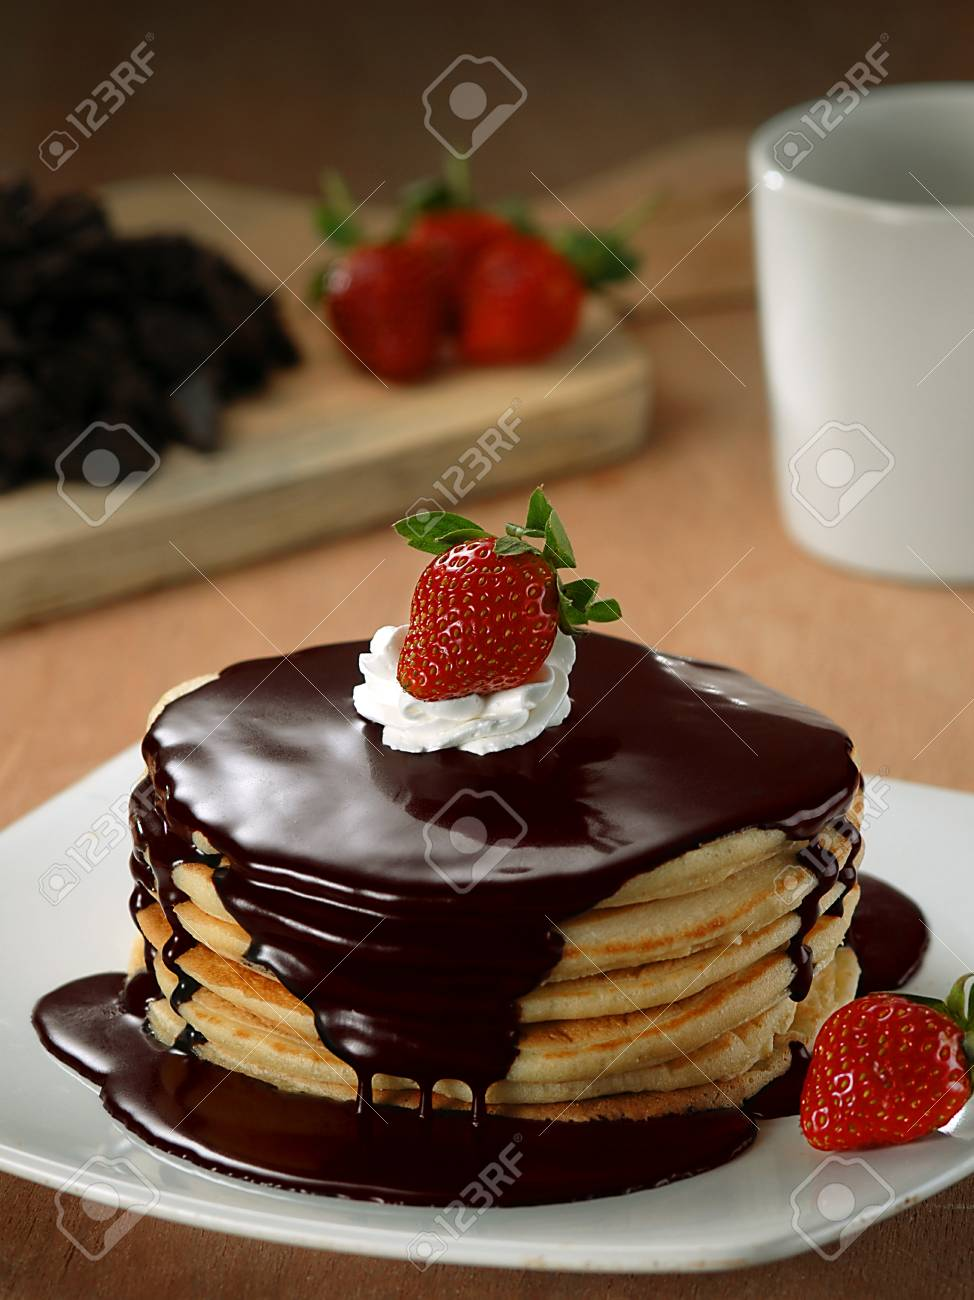 Stack Of Pancakes With Chocolate Syrup Whipped Cream And Strawberries Stock Photo Picture And Royalty Free Image Image 92038709